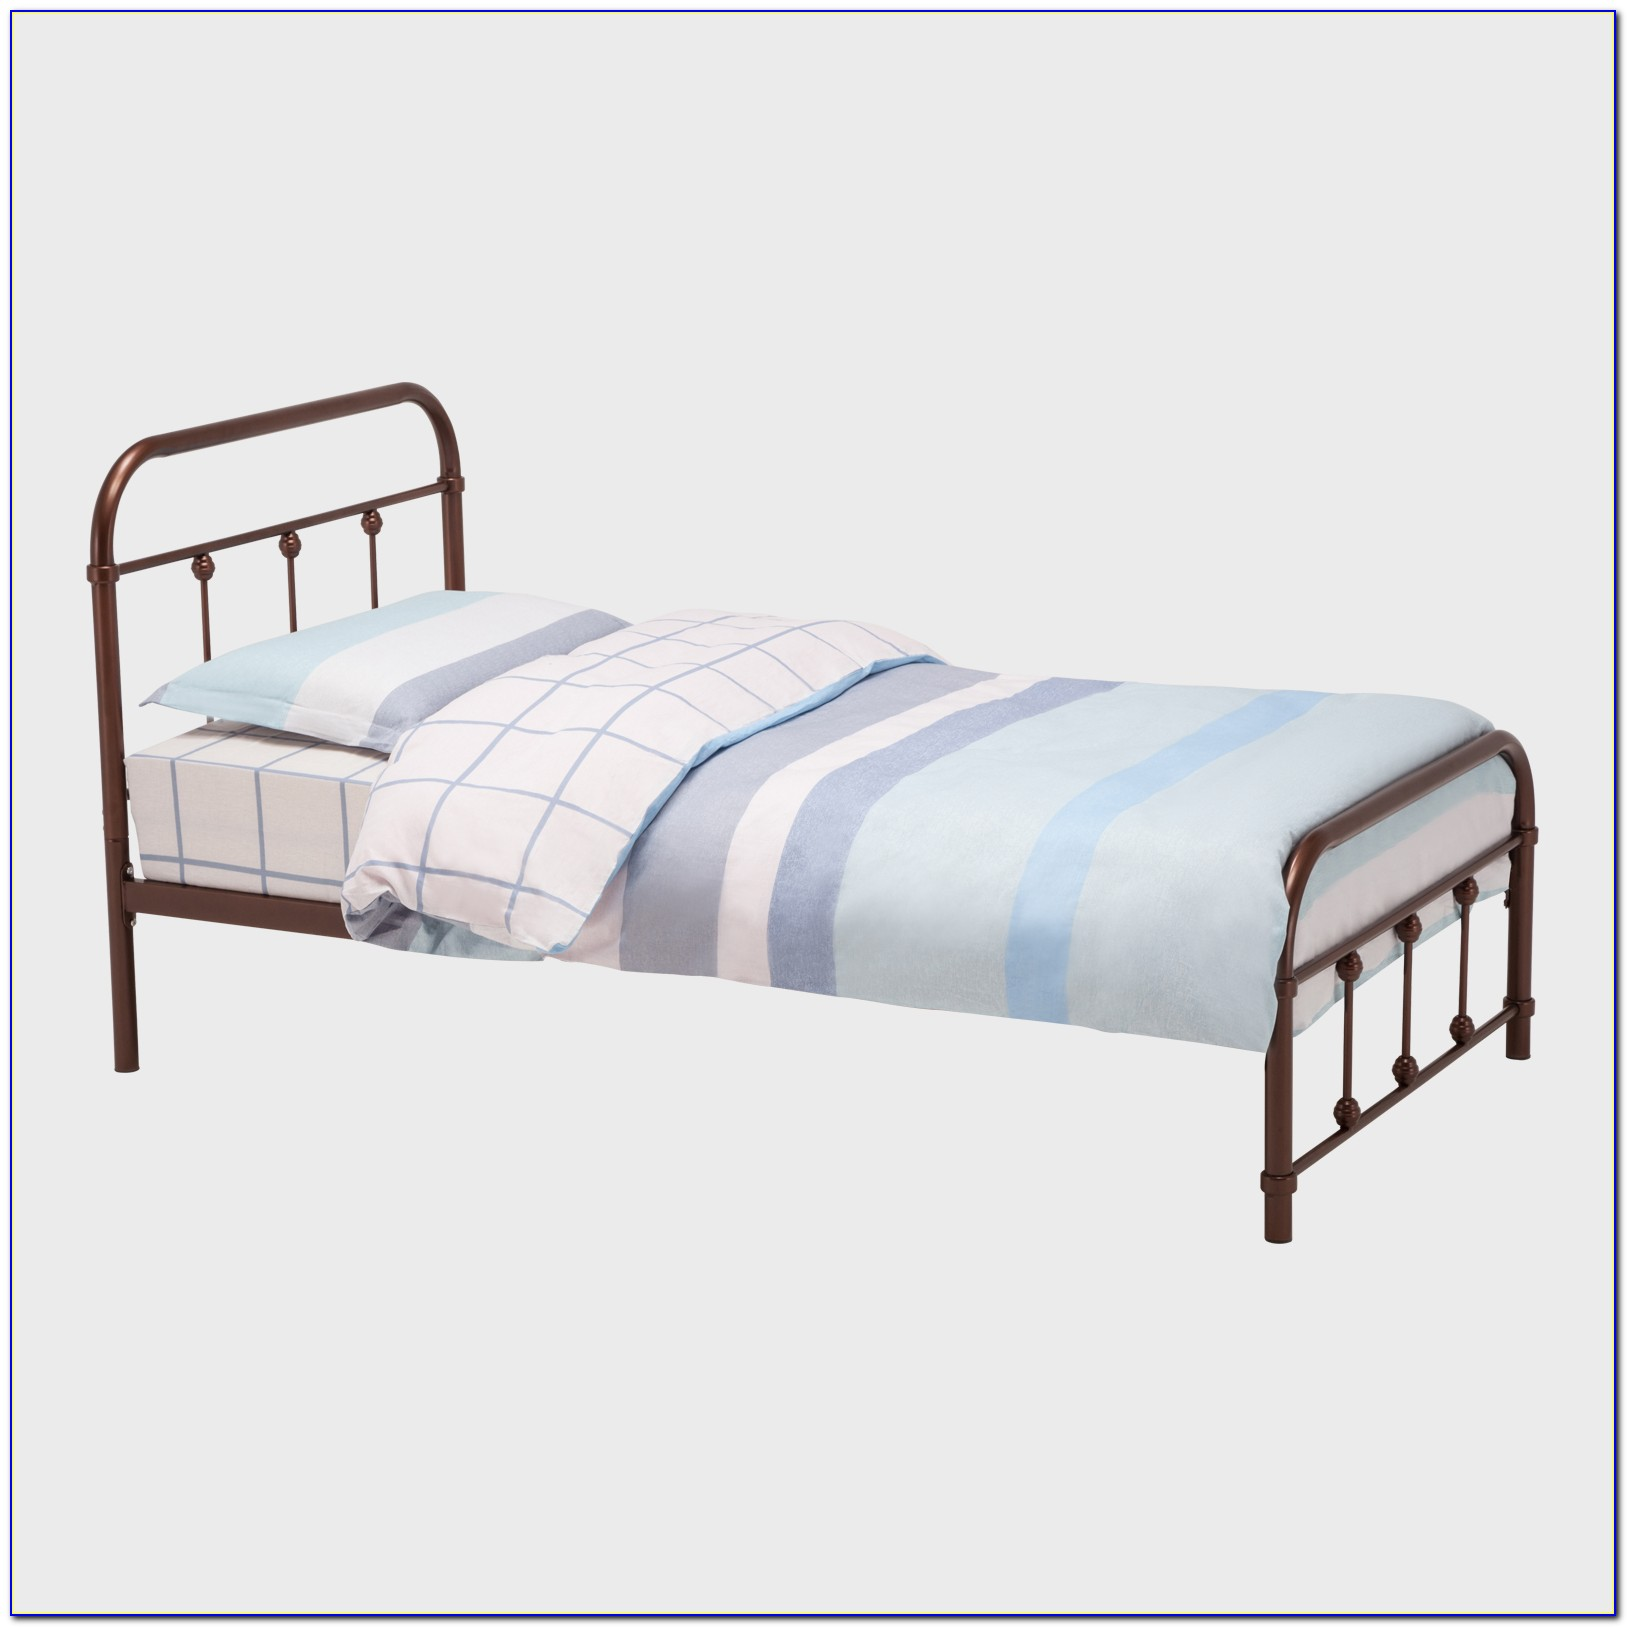 Metal Bed Frame Headboard Attachment